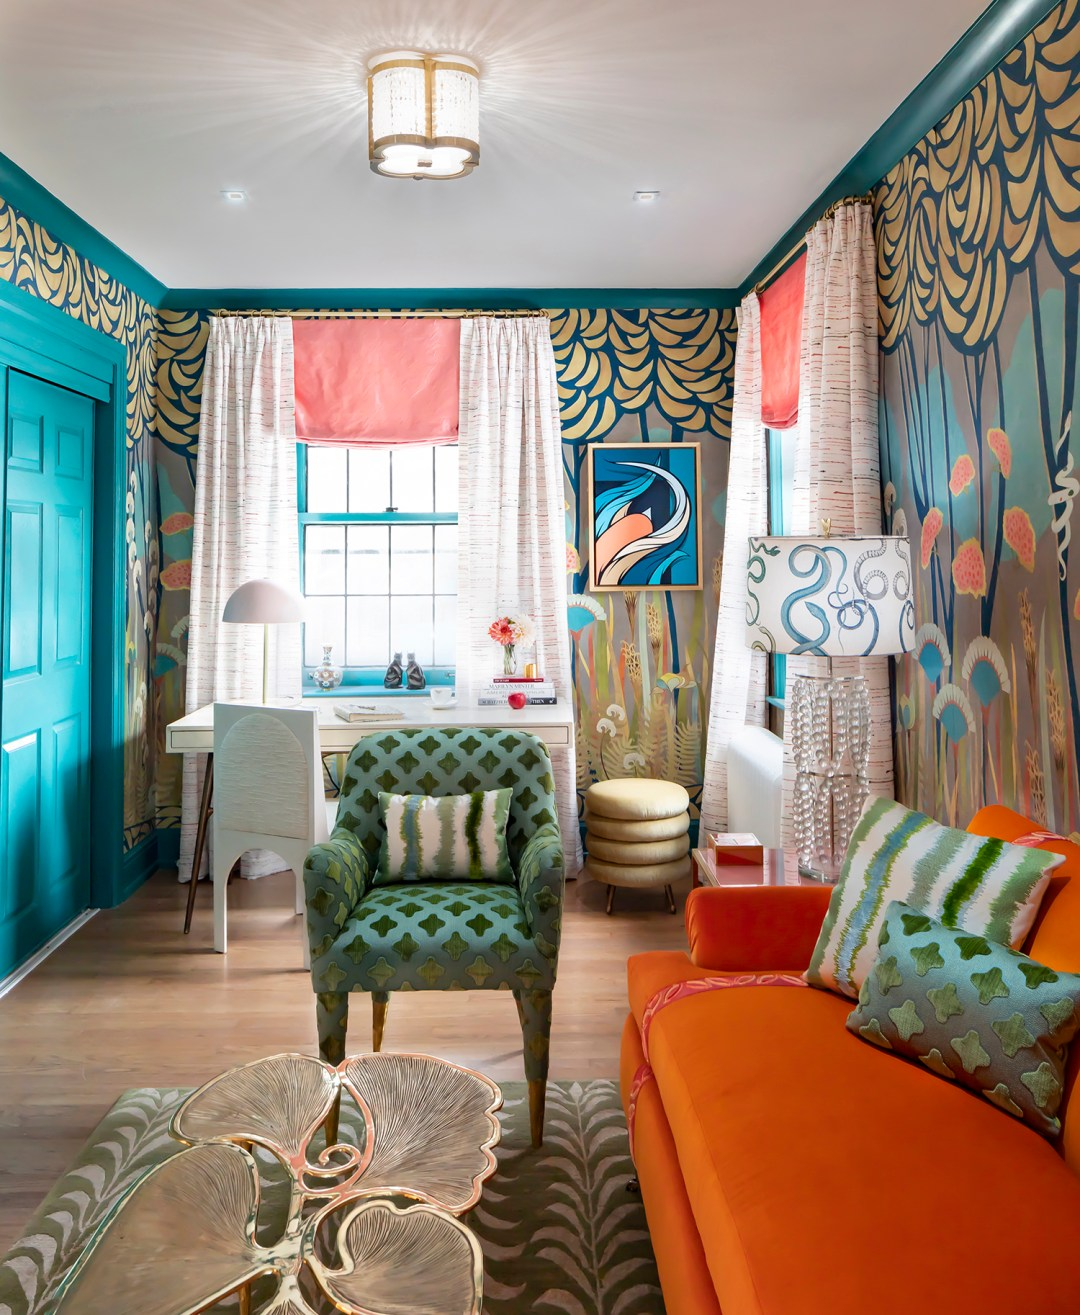 Courtney-McLeod-RMLID-JL-Showhouse_19 Tips for Adding Color and Pattern to a Room from a Louisiana Native